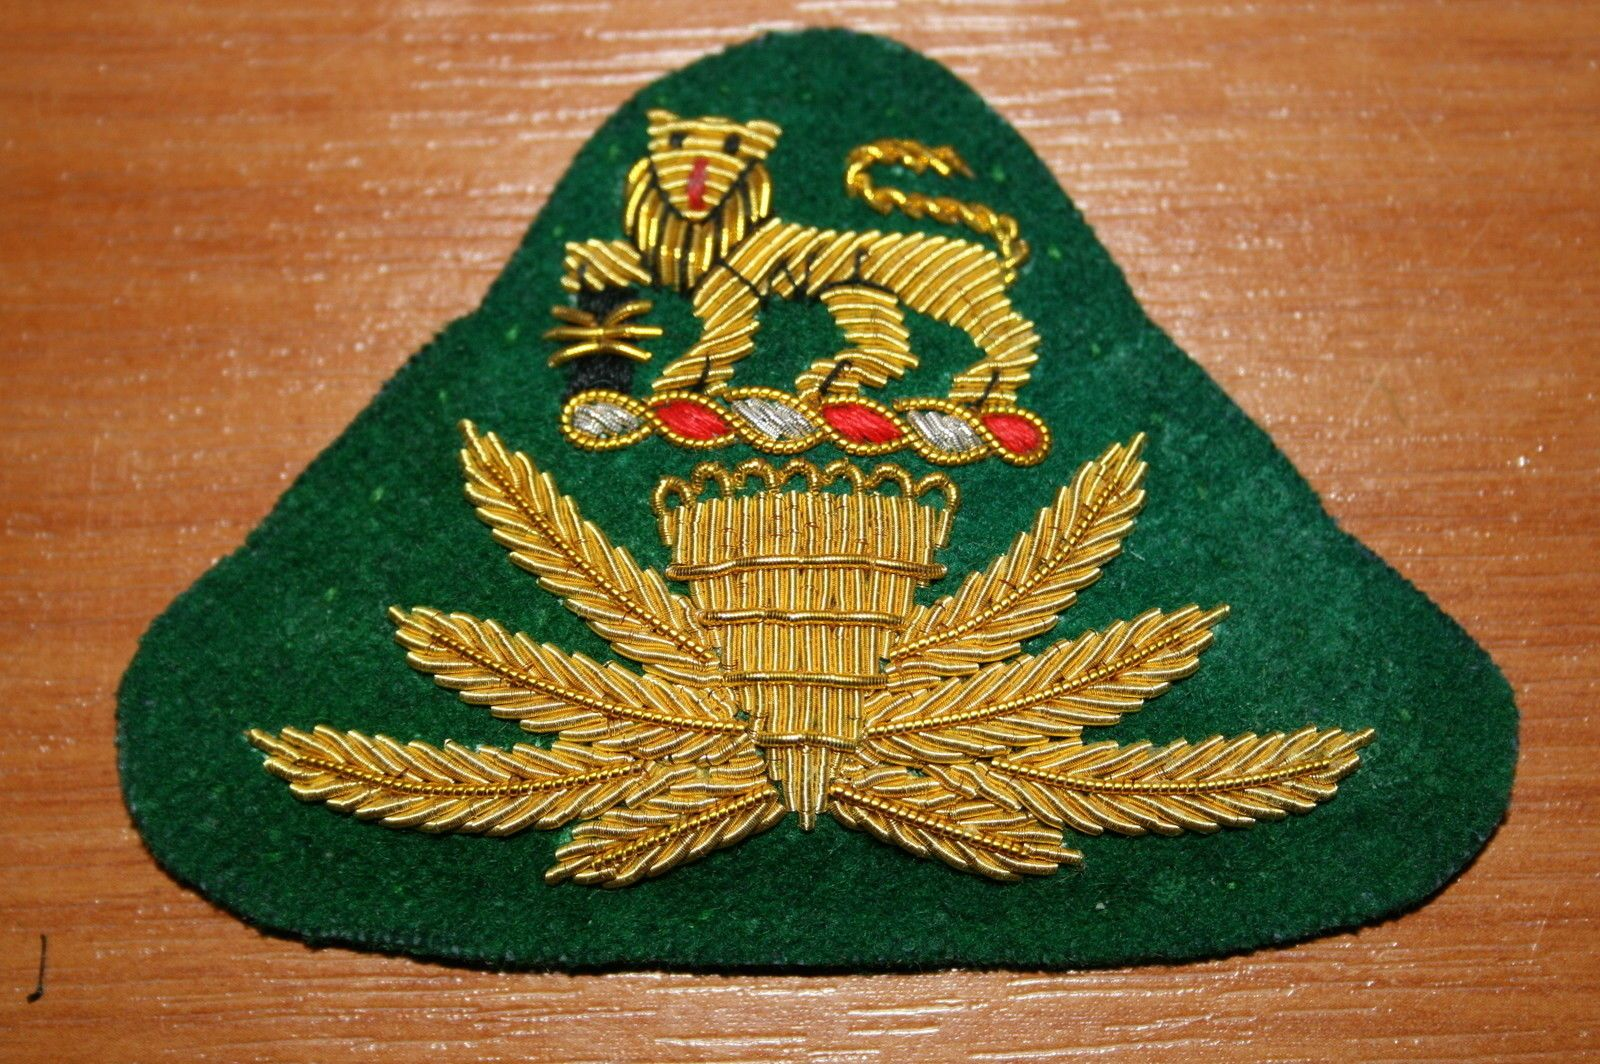 Details about SOUTH AFRICAN AFRICA ARMY GENERAL OFFICER'S